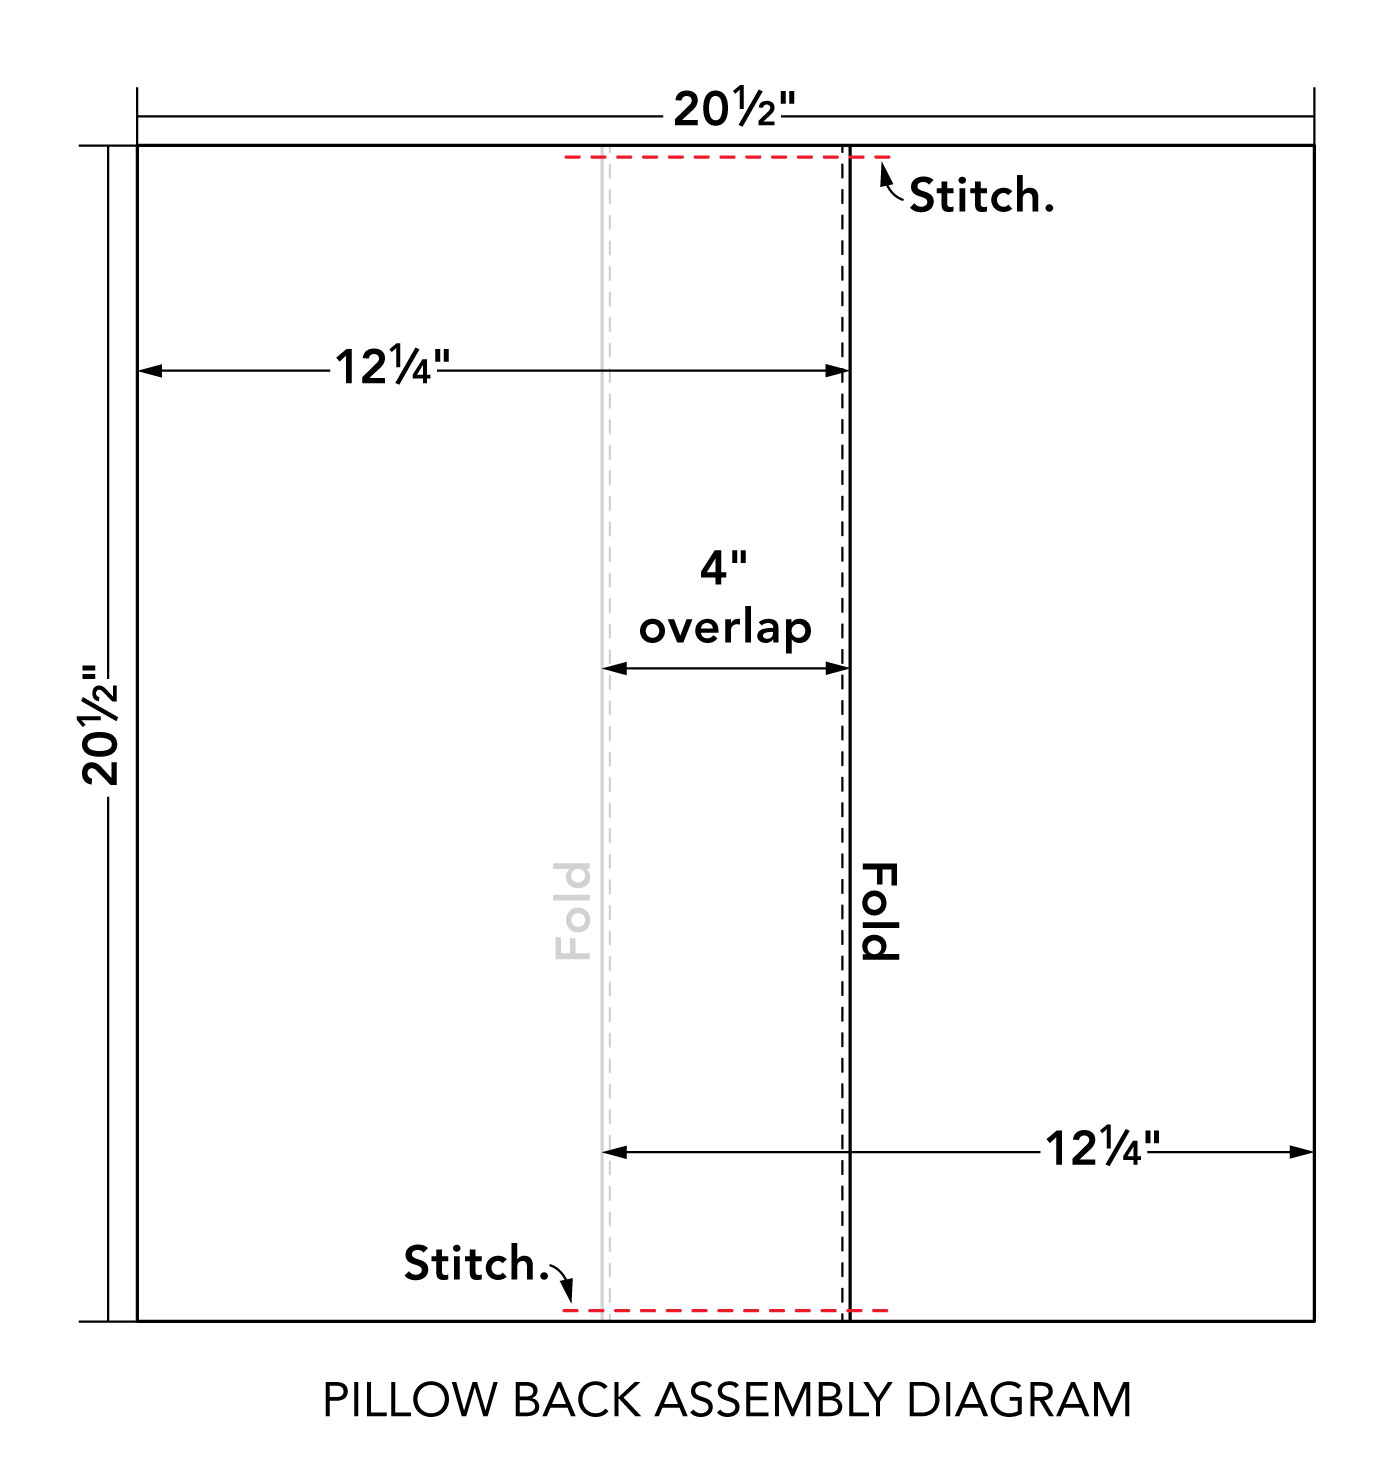 pilow back assembly diagram